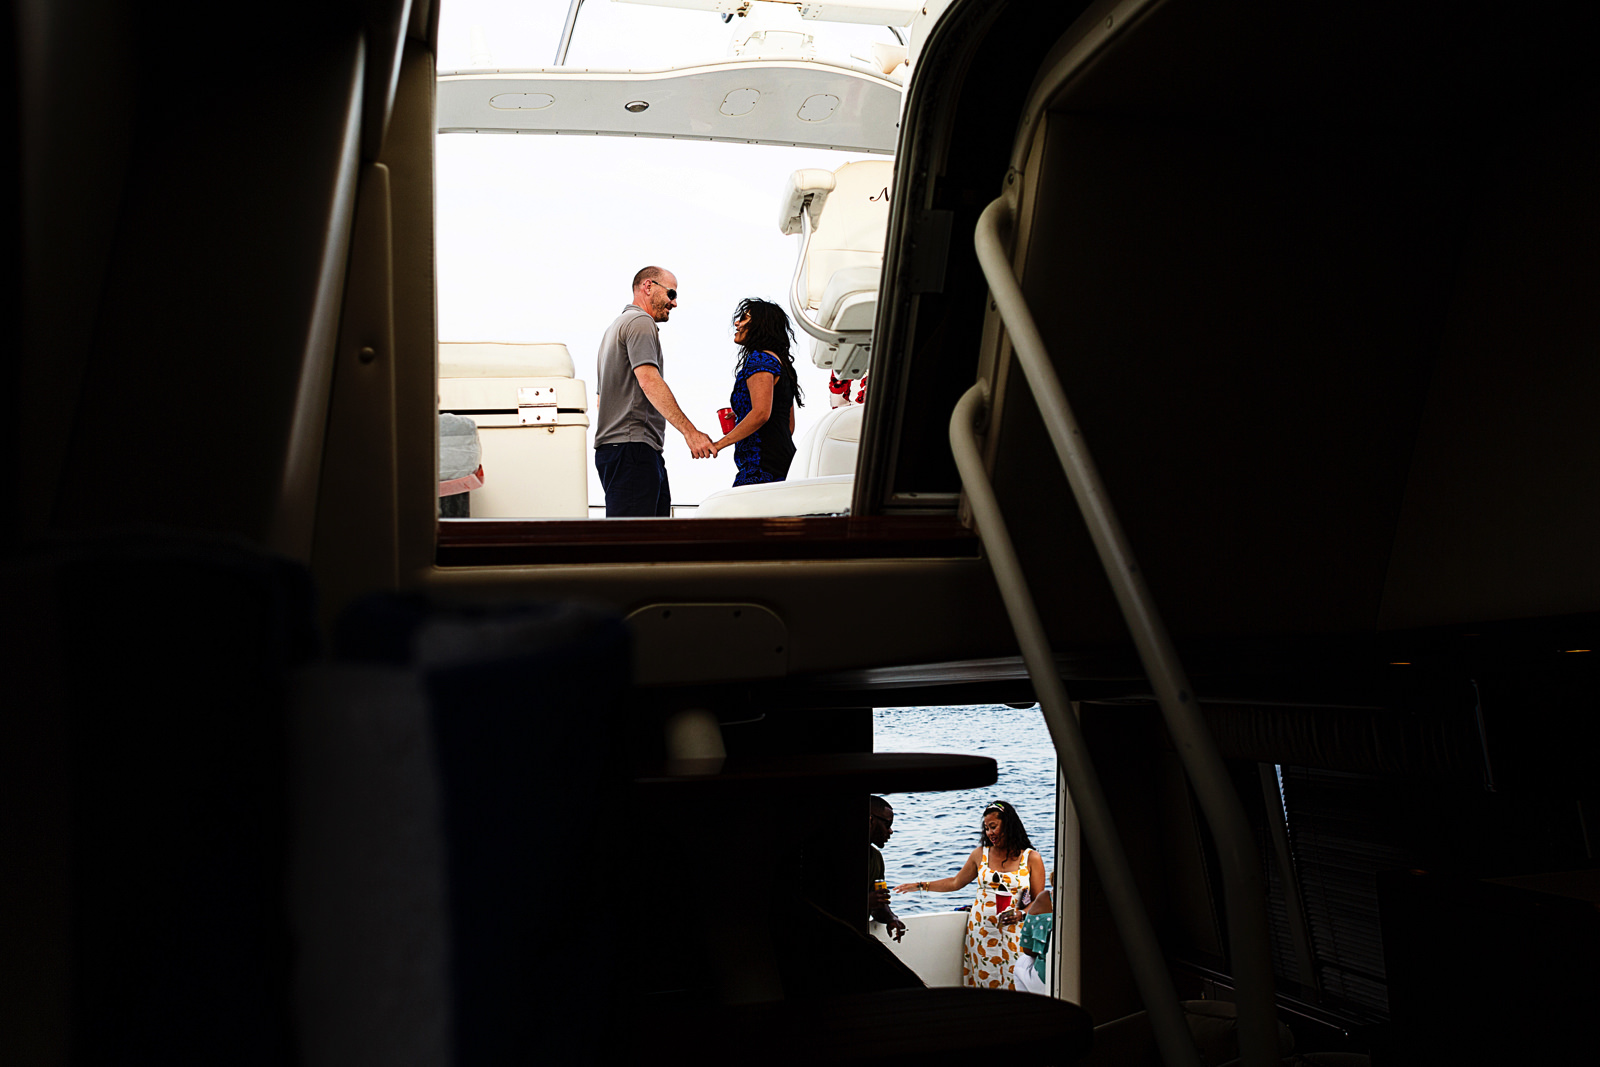 Couple dance on the upper deck and another couple chat in the lower deck of the yacht